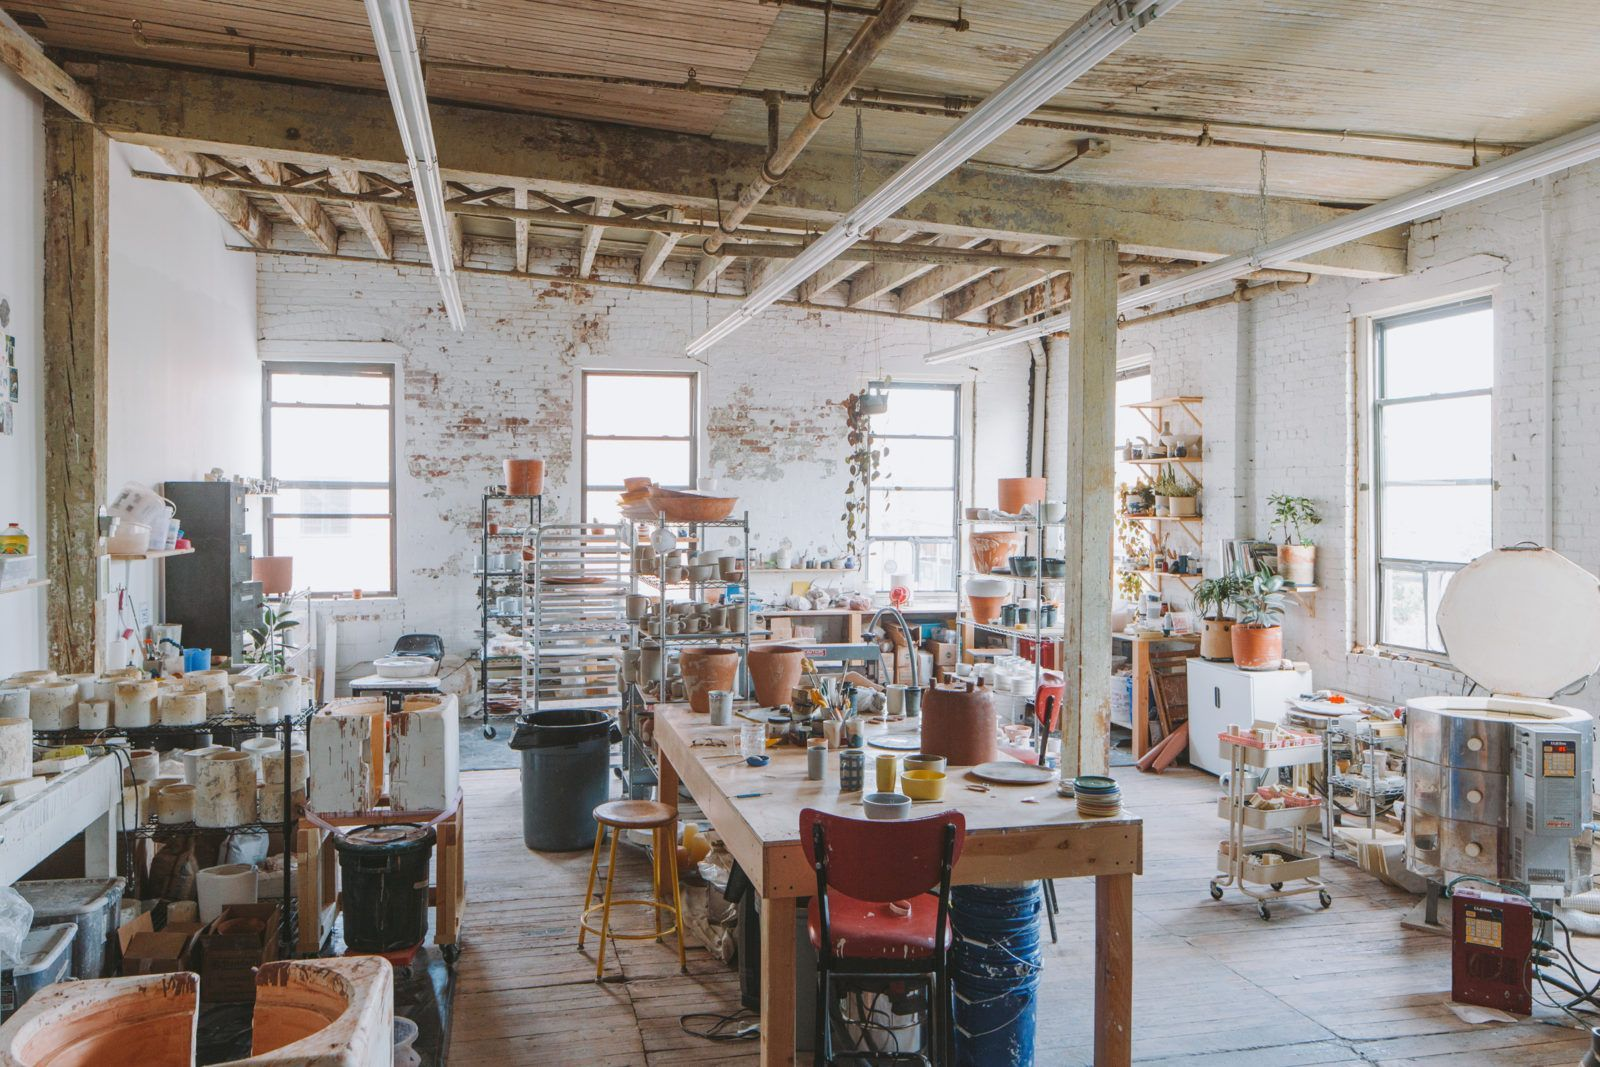 How to enhance your interior design with pottery pottery